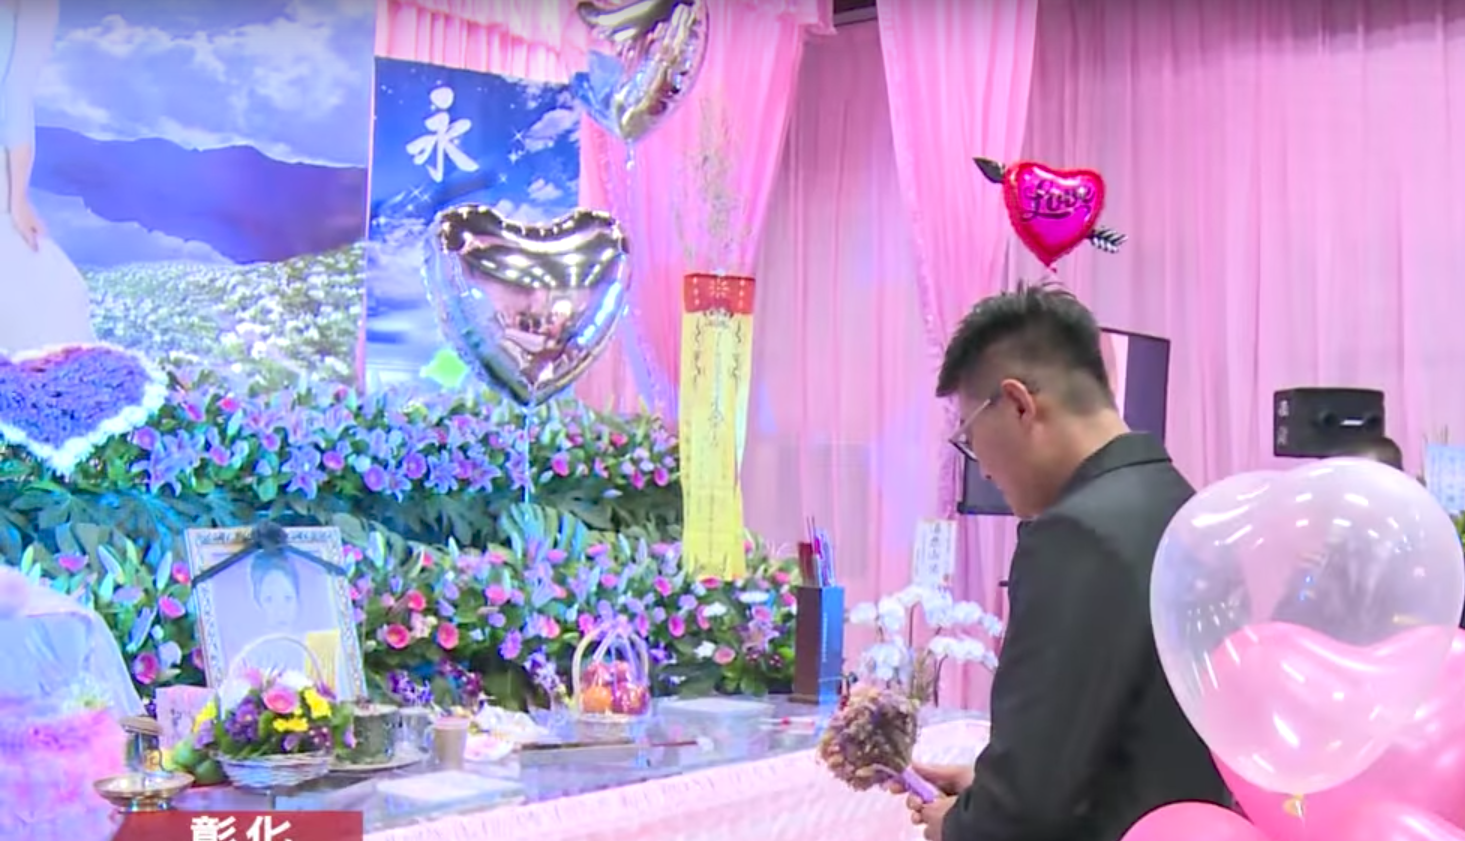 Taiwanese man gets engaged to dead girlfriend at funeral: report